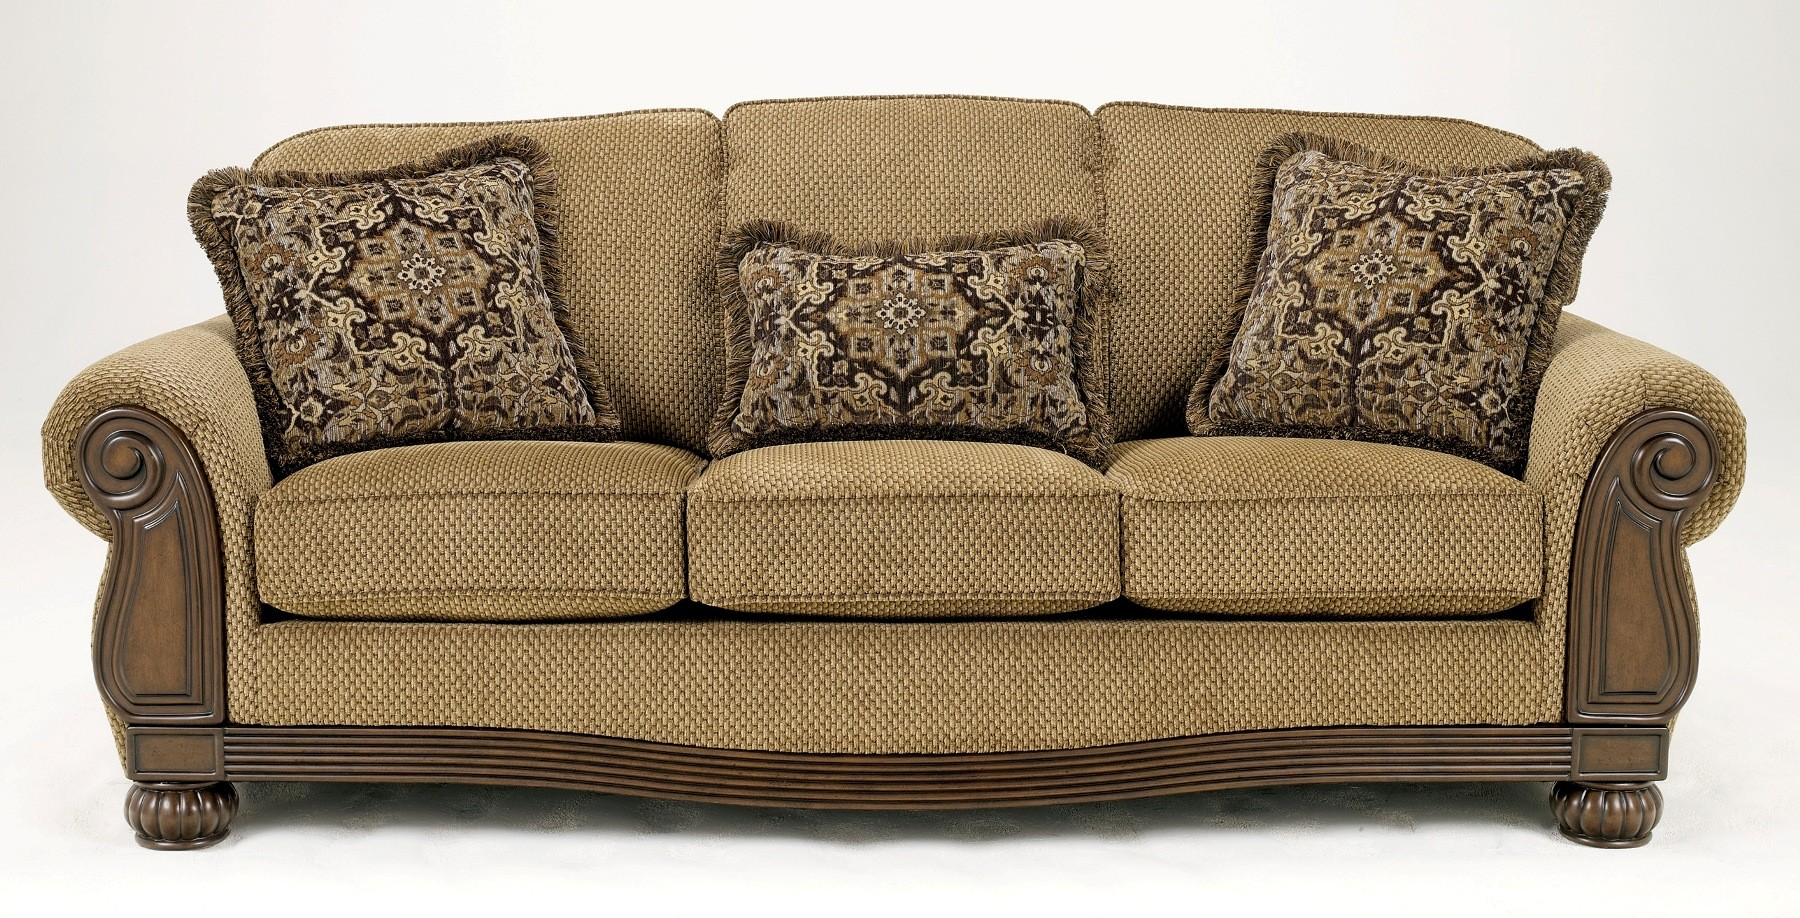 Ashley Lynnwood Amber Queen Sofa Sleeper 6850039 Furniture